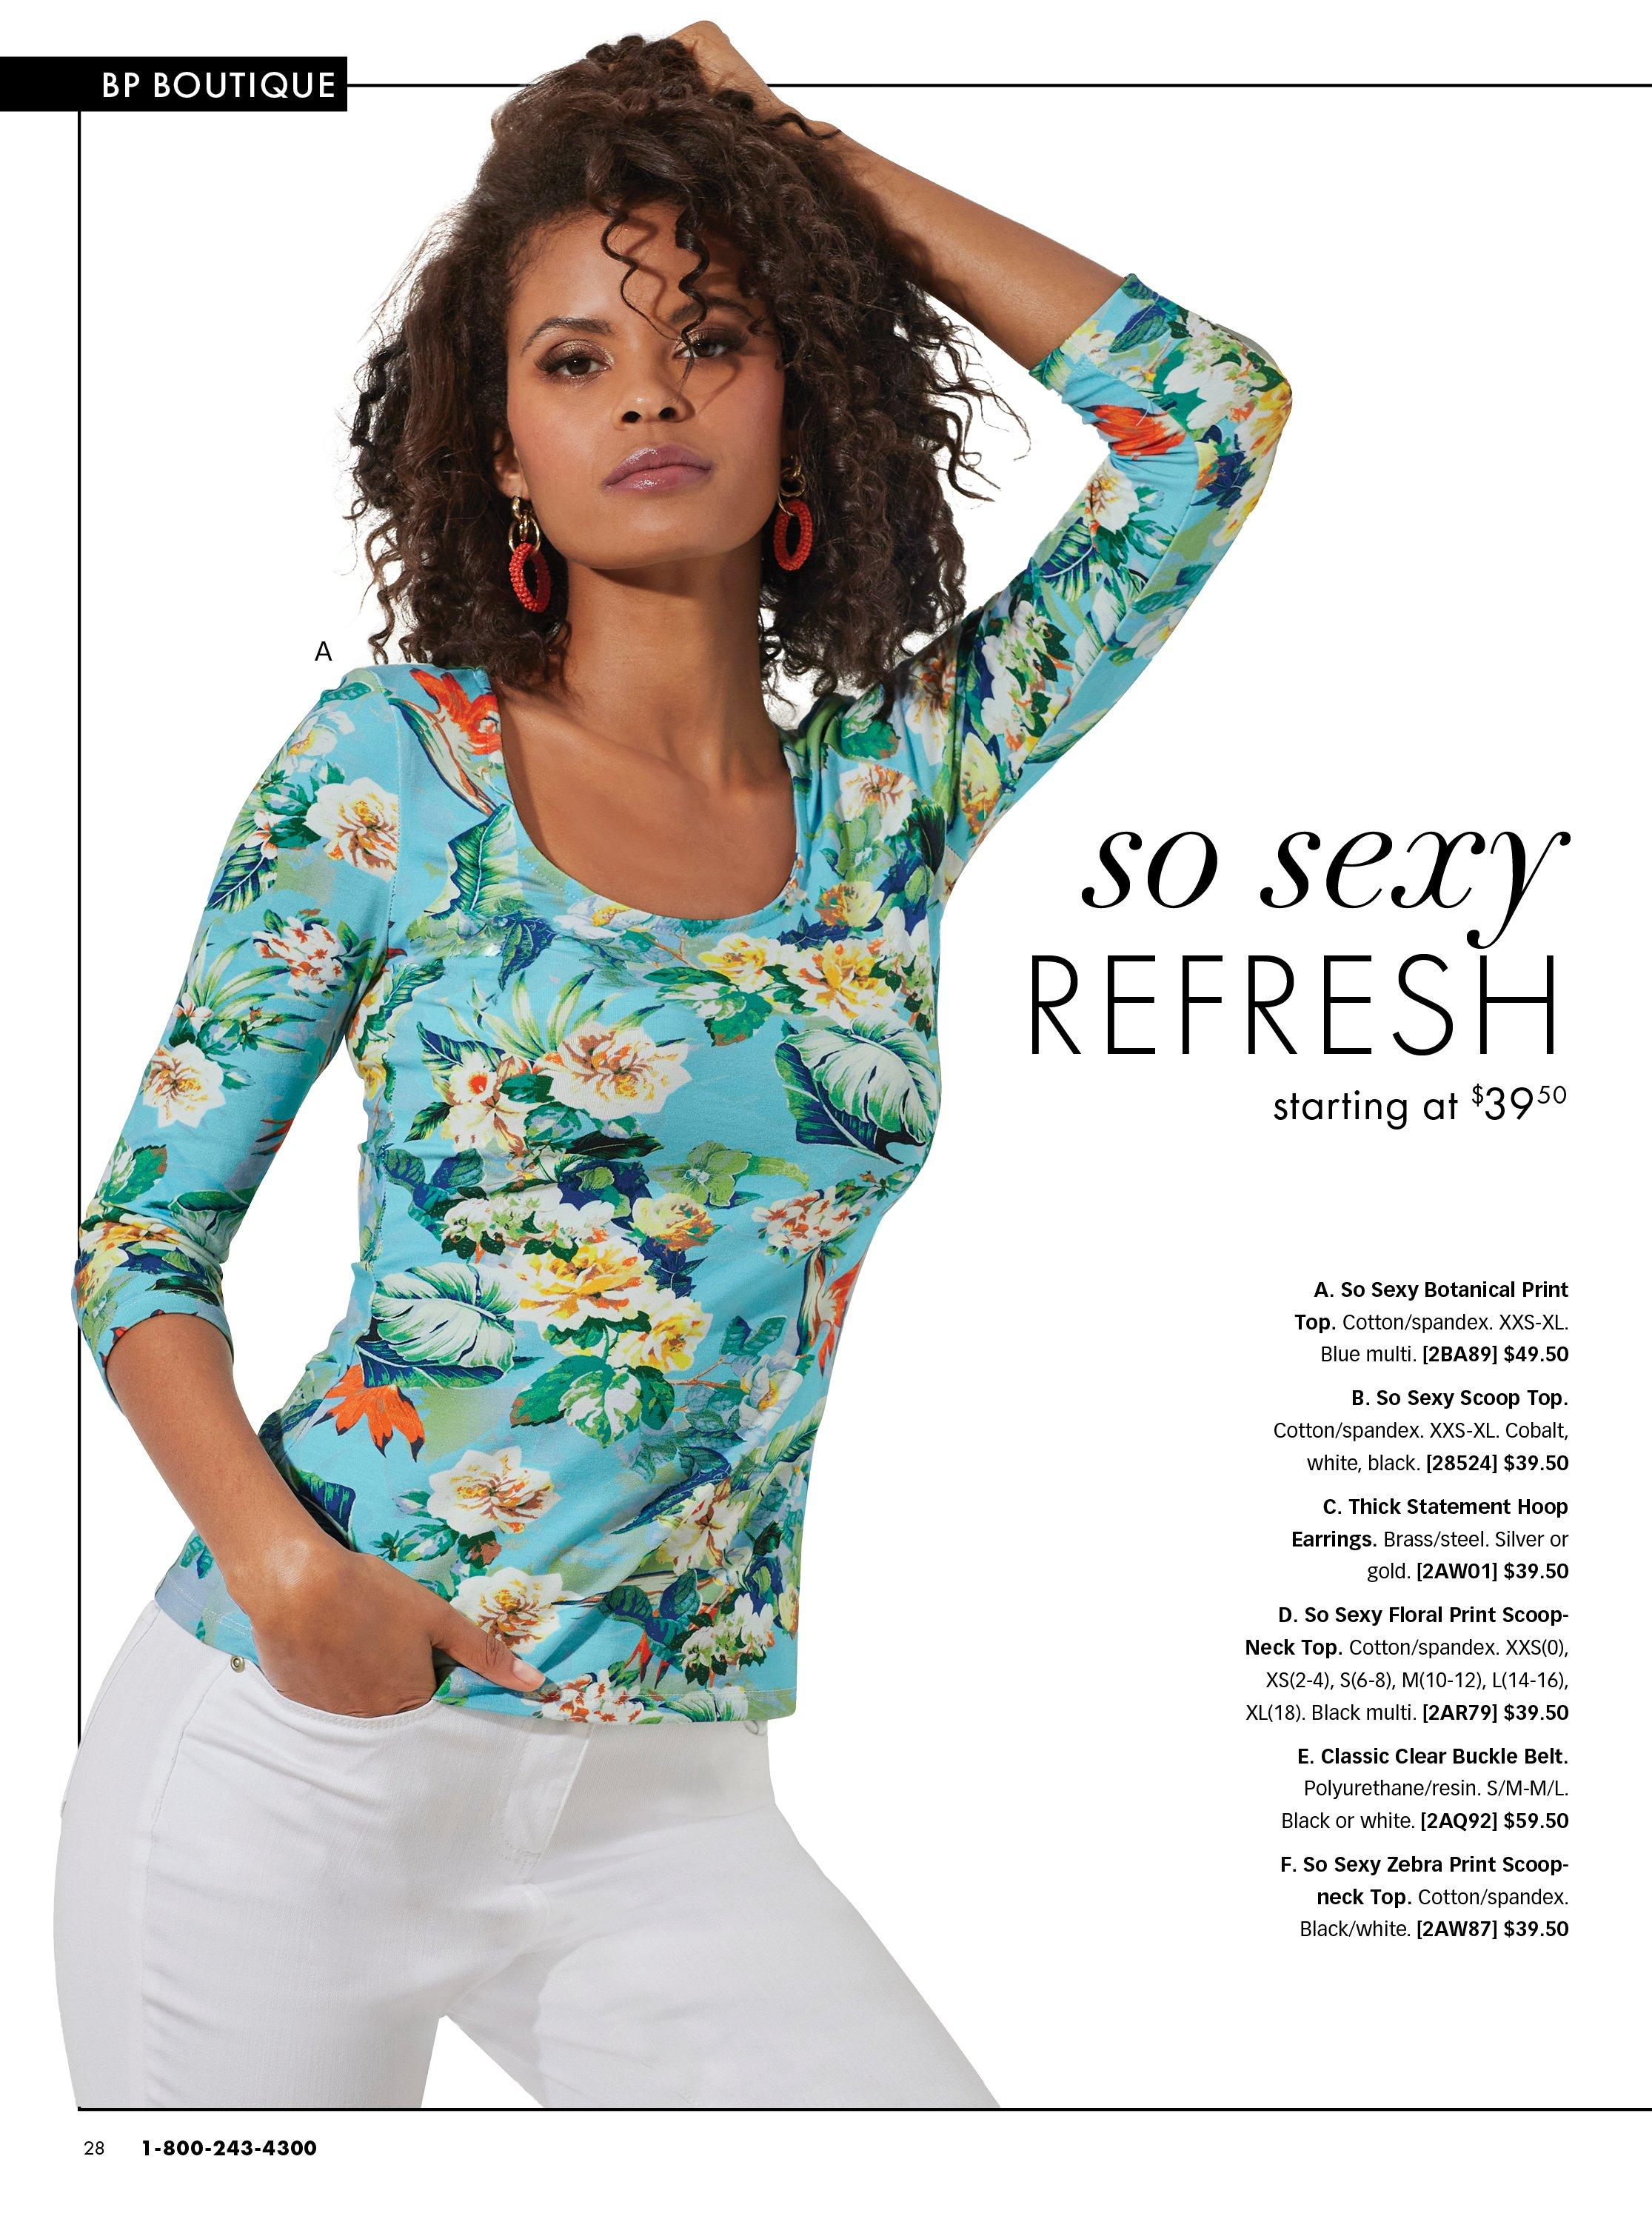 model wearing a blue floral printed long-sleeve scoop neck top and white pants.